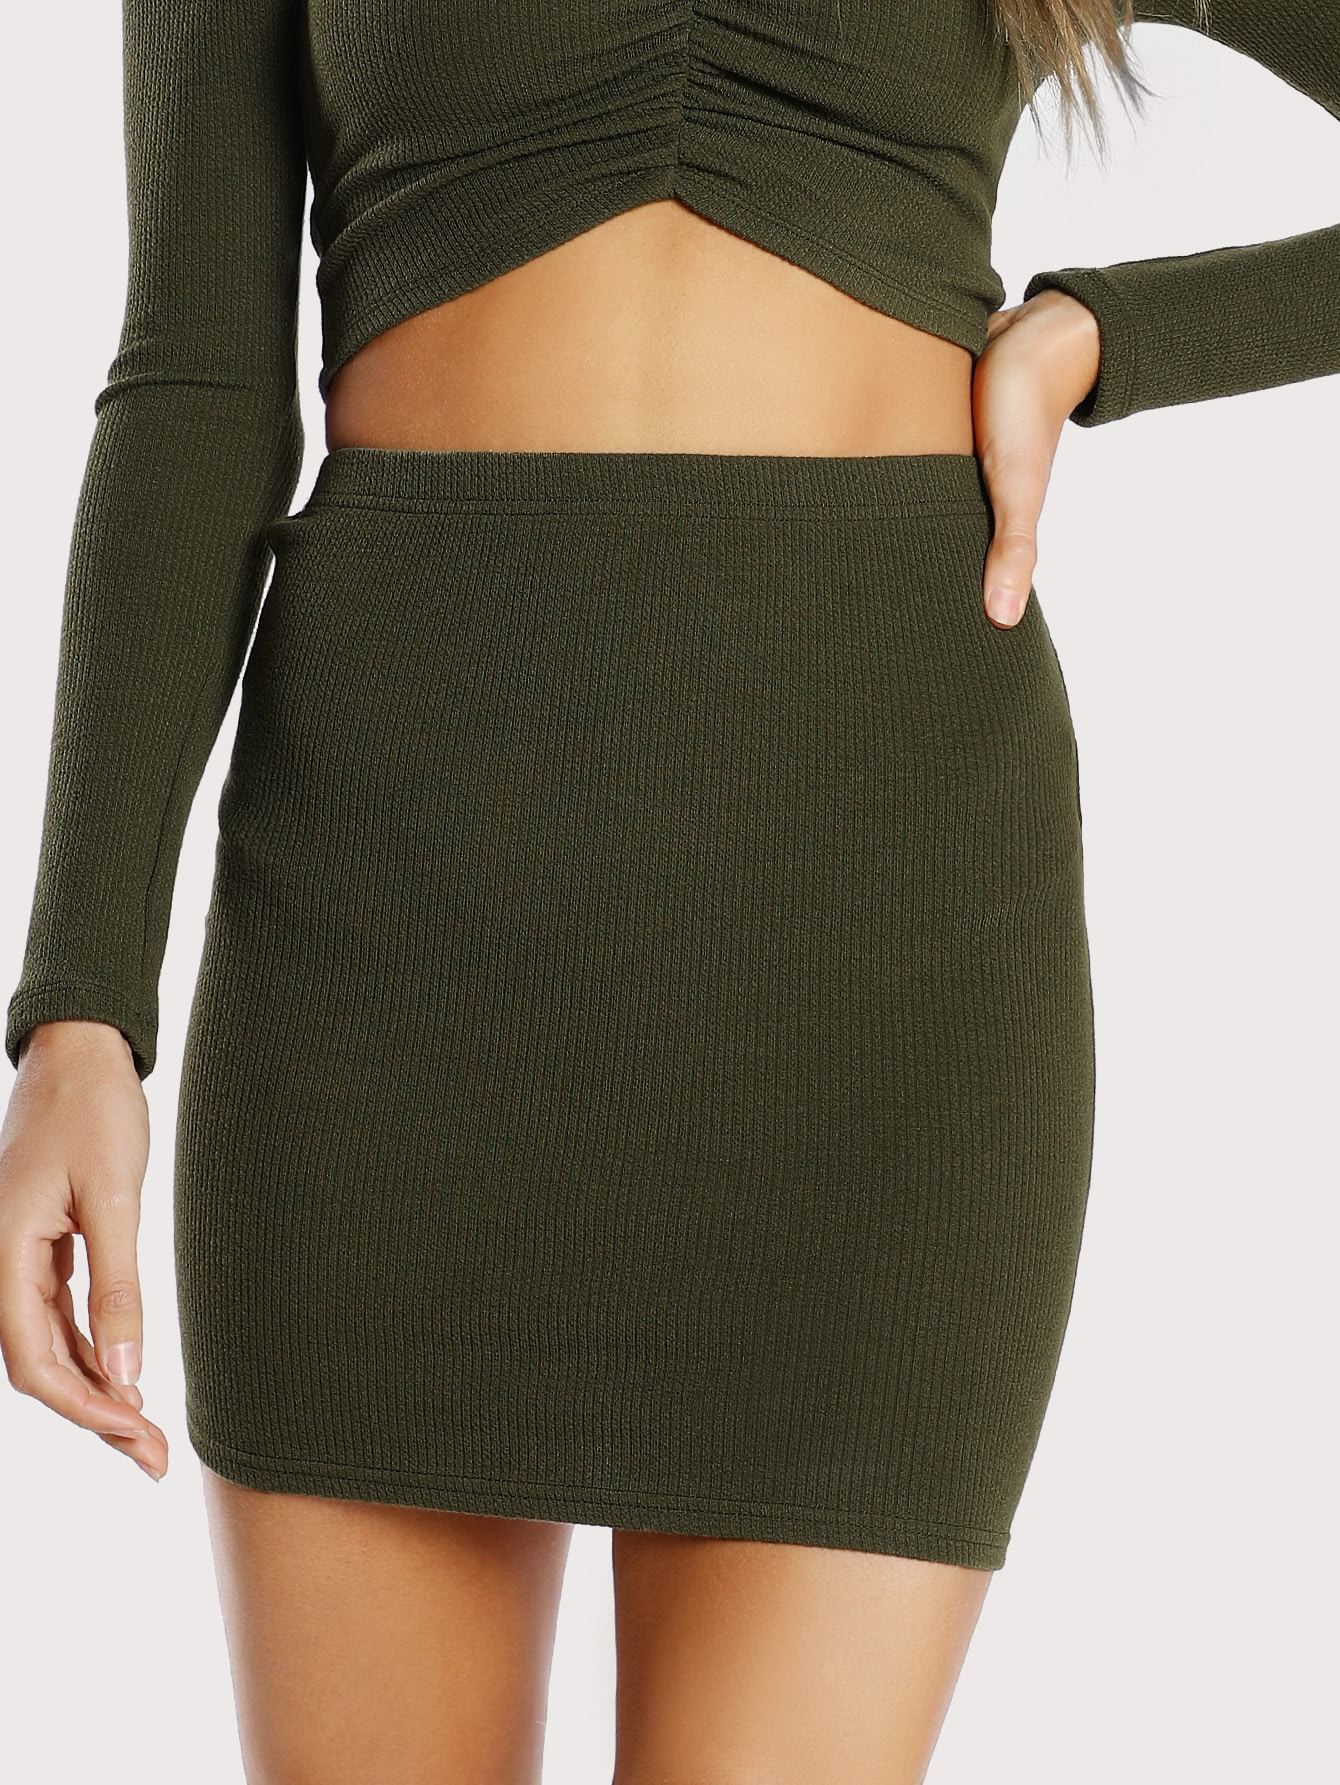 Ribbed Knit Bodycon Skirt ribbed knit pencil skirt